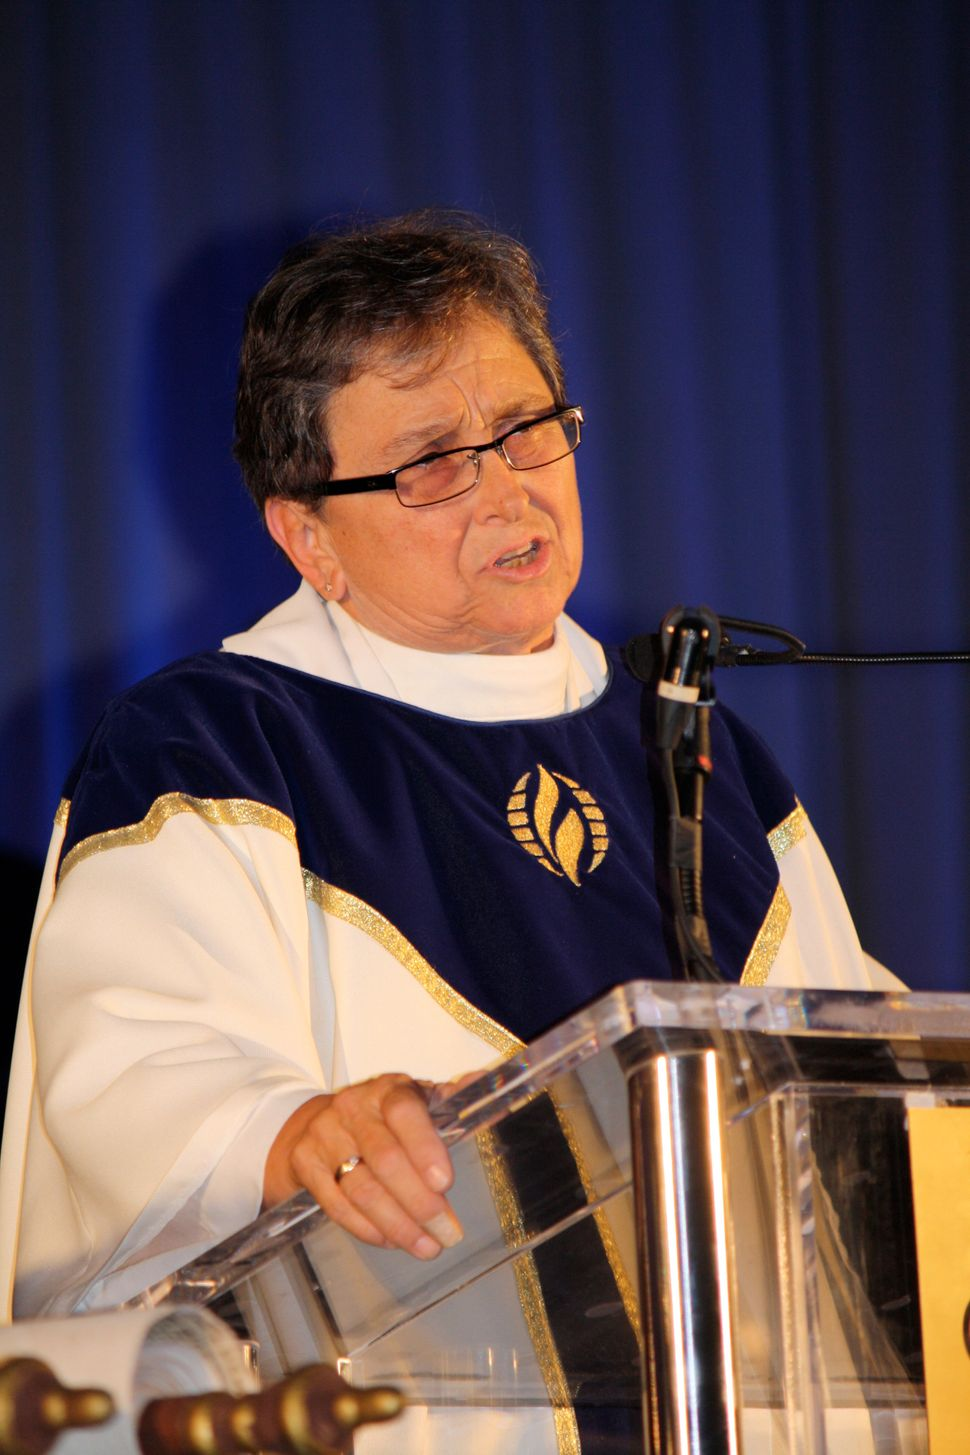 "<a href=""http://mccchurch.org/the-reverend-dr-nancy-l-wilson/"" target=""_blank"">Rev. Nancy Wilson</a> is the Moderator of the"